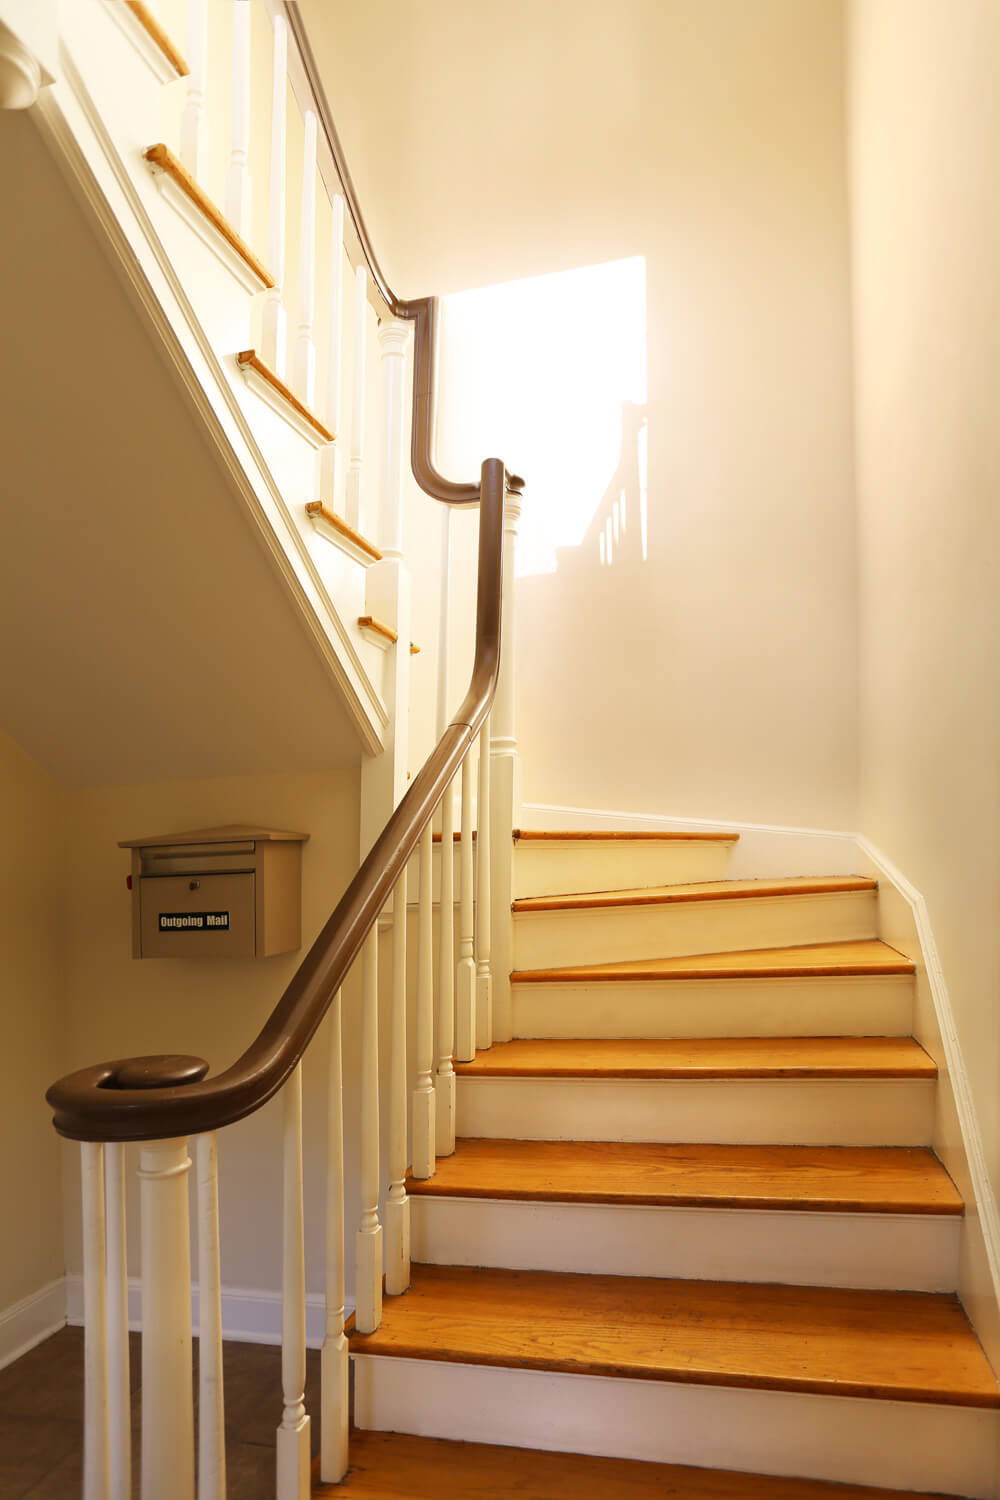 Adams Avenue Flats Designed by Foshee Architecture - Interior View of the Stairs